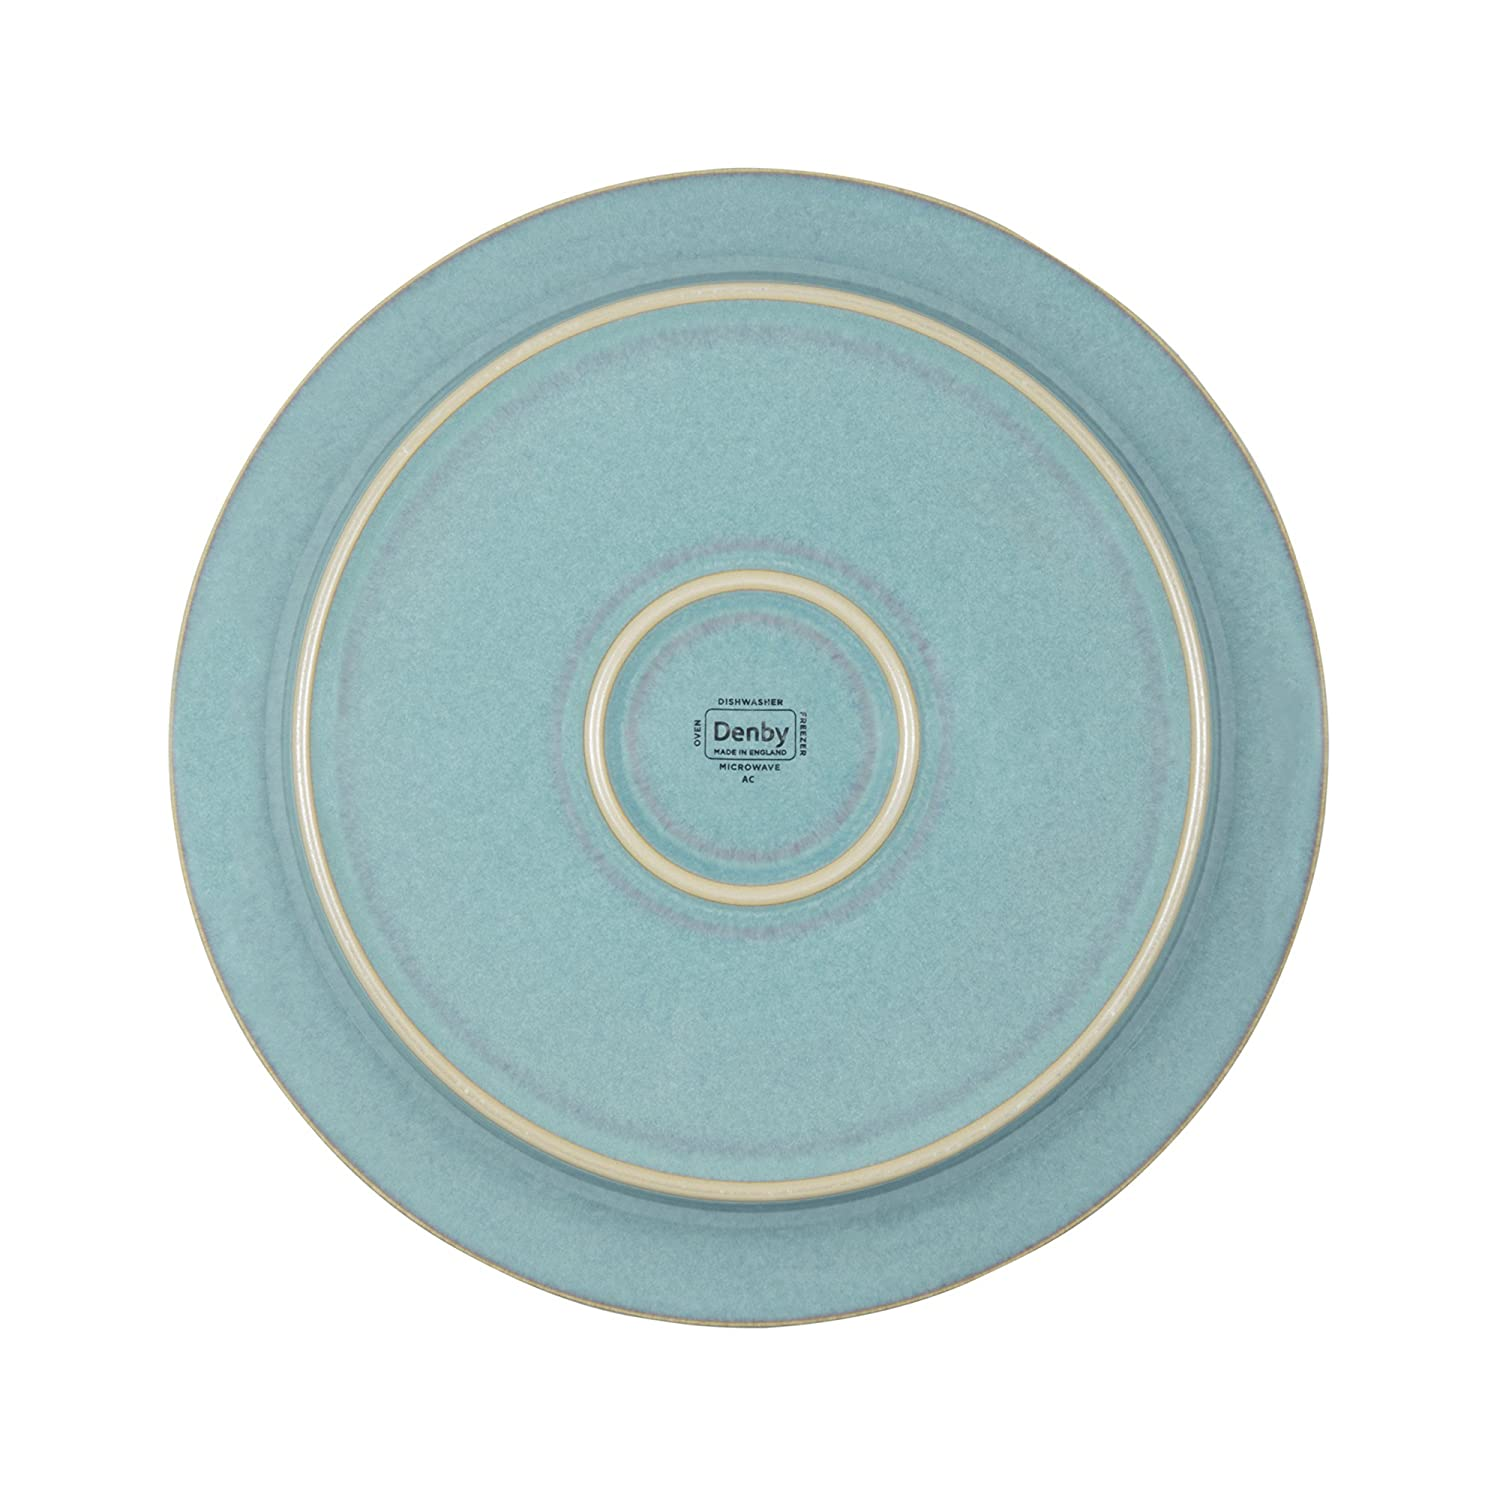 Amazon.com | Denby Azure Coast Dinner Plates Set of 4 Denby Dishes Accent Plates  sc 1 st  Amazon.com & Amazon.com | Denby Azure Coast Dinner Plates Set of 4: Denby Dishes ...